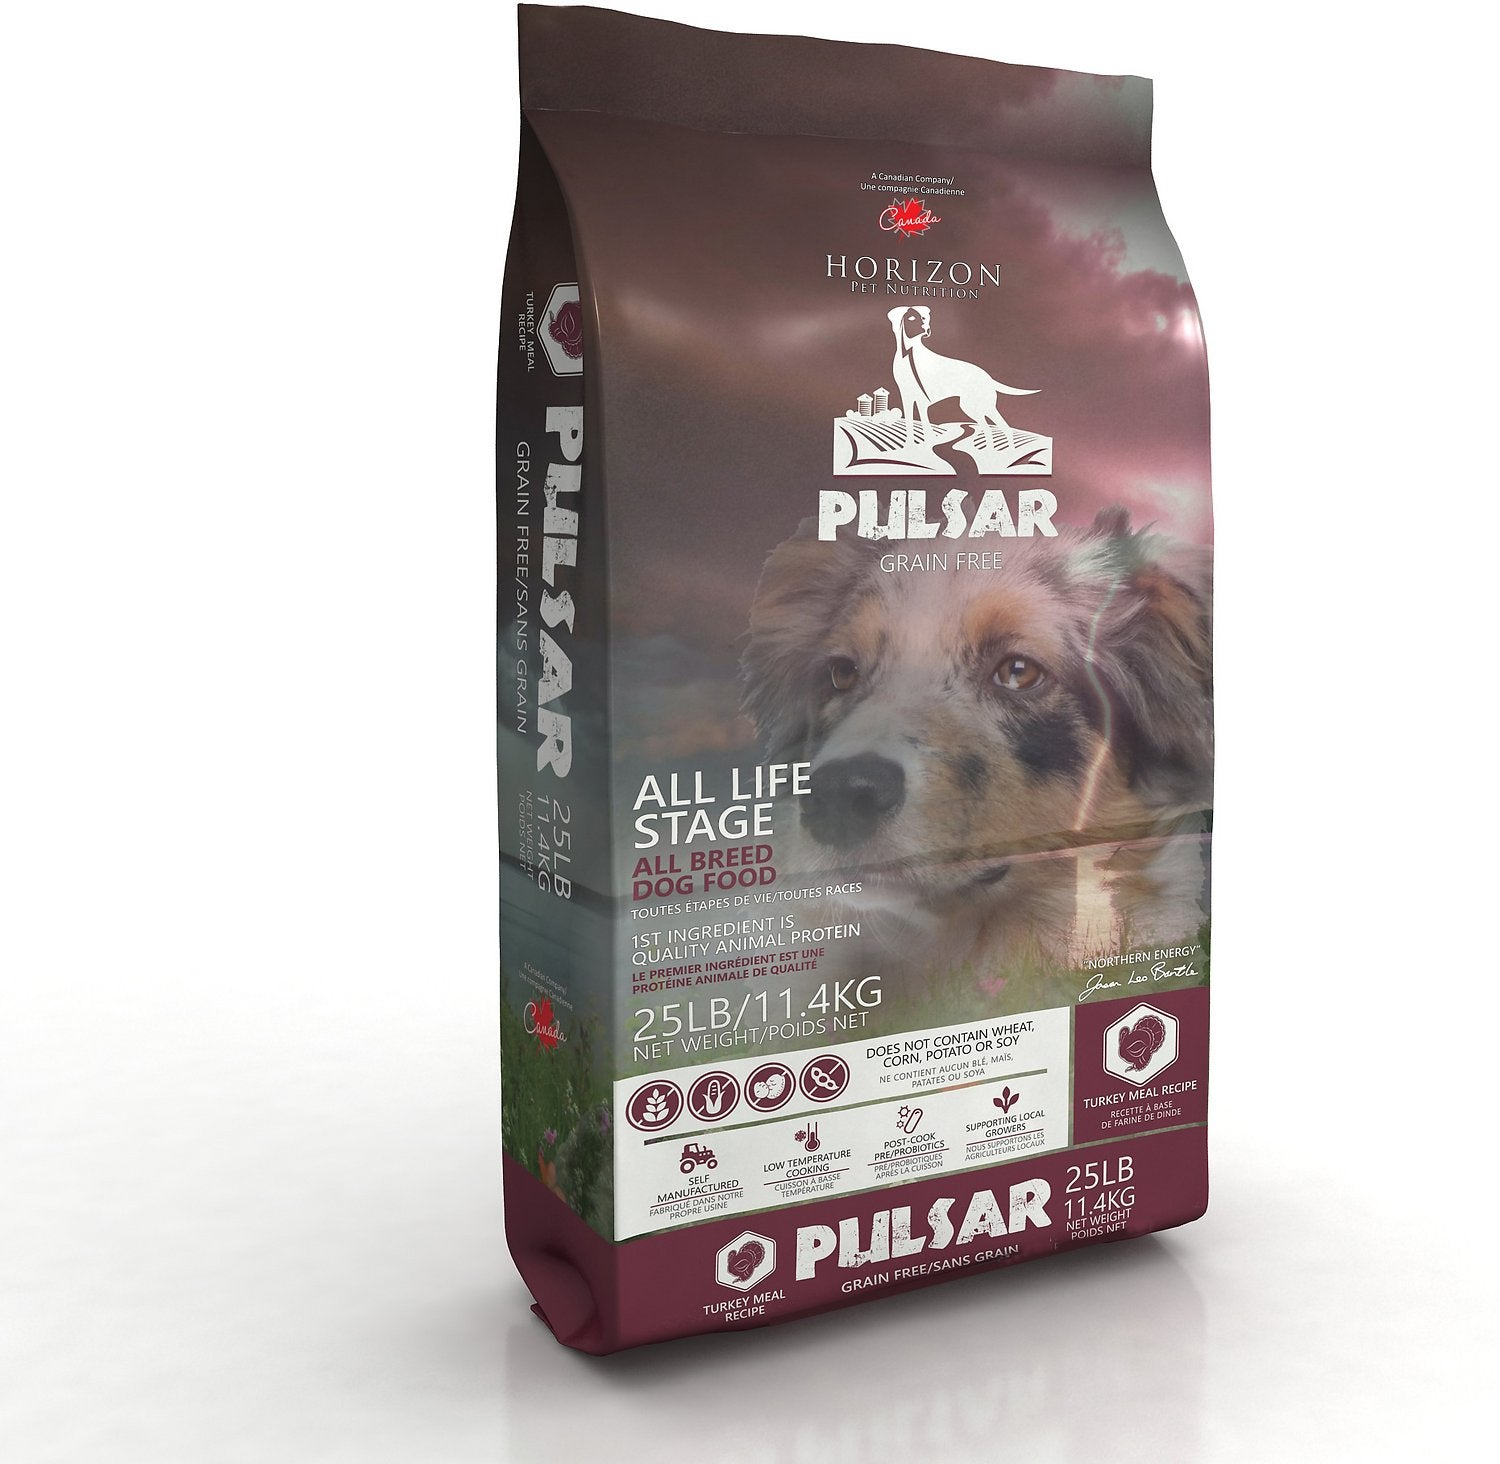 Horizon Pulsar Pulses & Turkey Dog Food